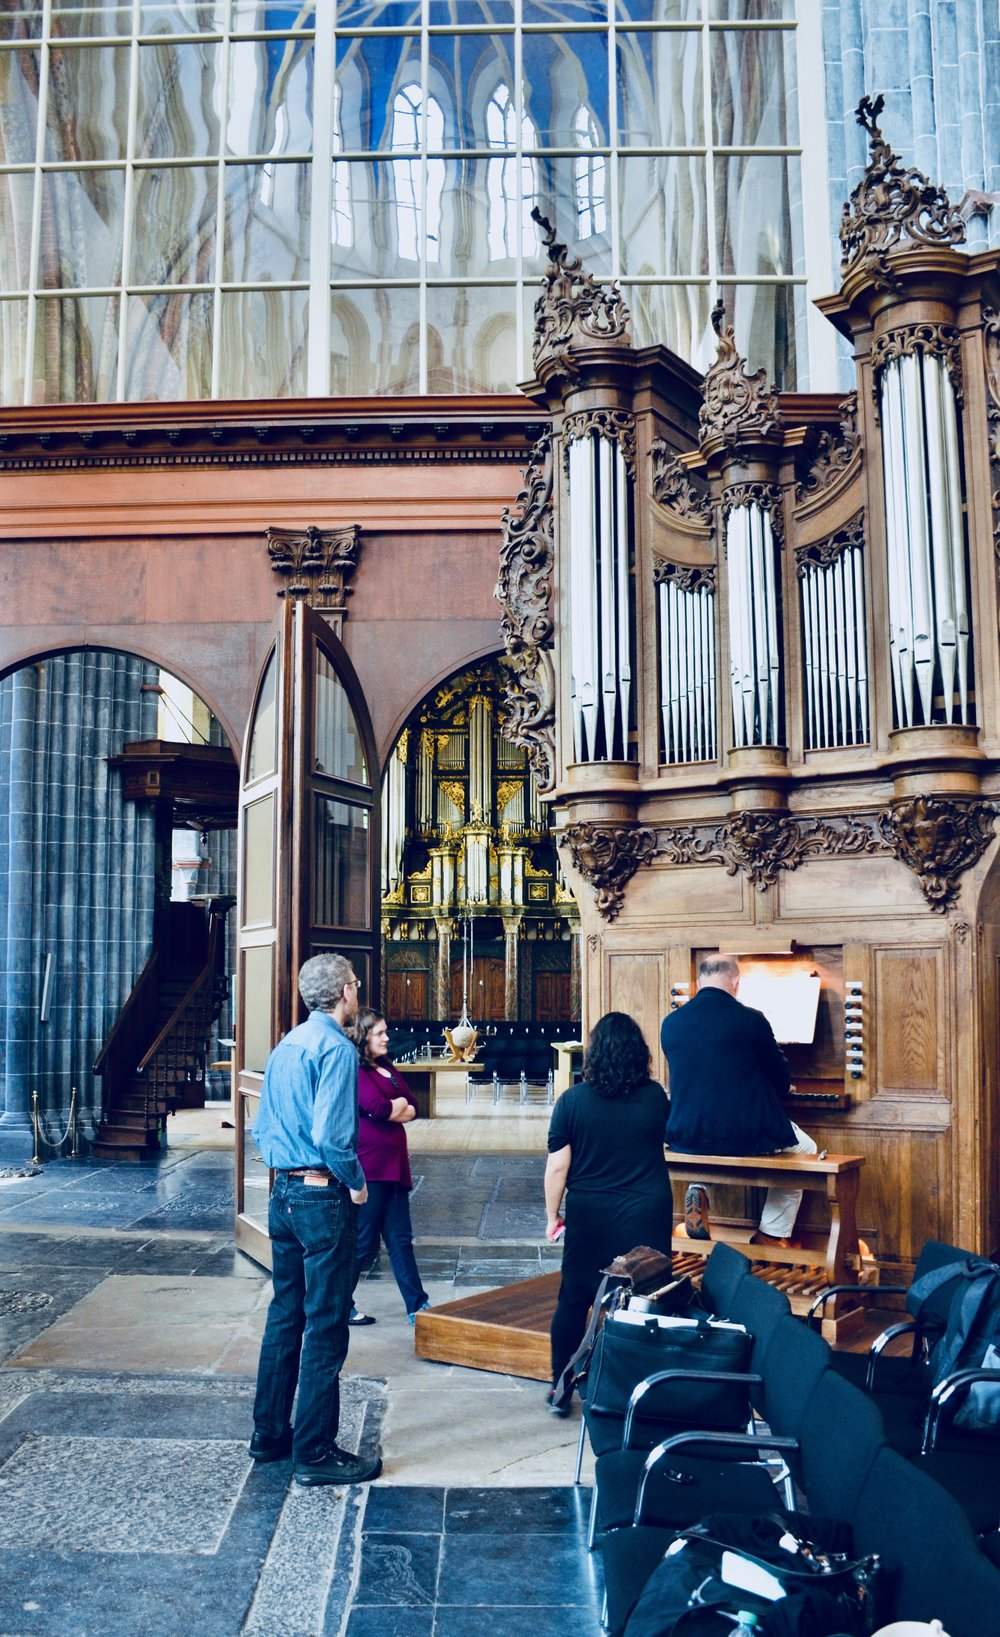 Erwin Wiersinga demonstrates the 1742 Le Picard organ in Martinikerk, Groningen. Boston Organ Studio.